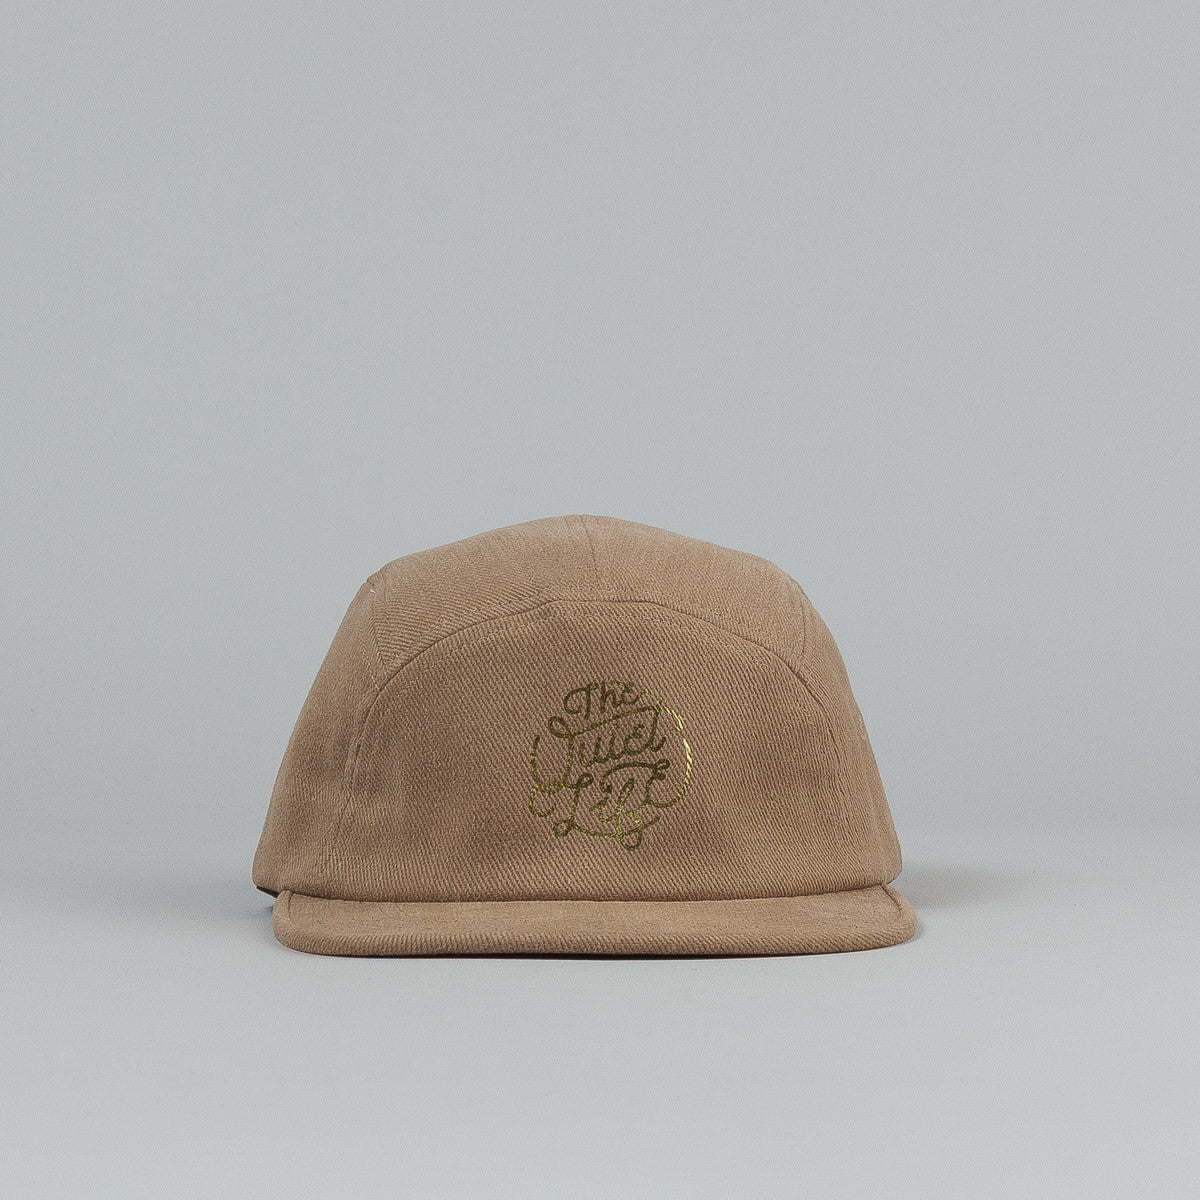 The Quiet Life Day Logo Moon Cap - Earth